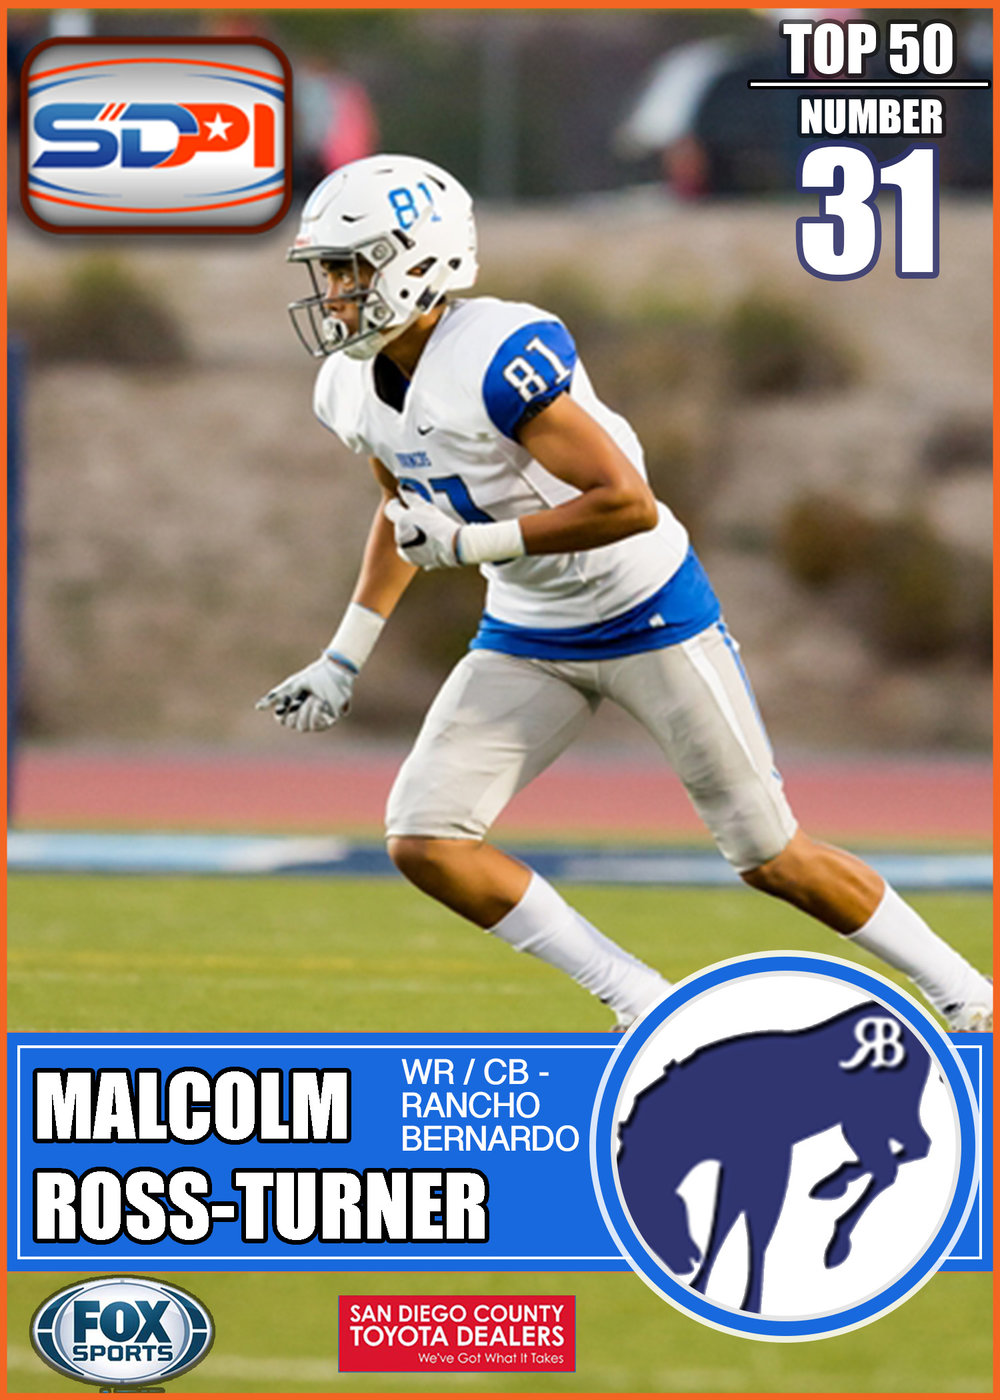 - A game-changing wideout, Malcolm is an effective run-blocker, has explosiveness tobeat press coverage off the line of scrimmage, decent speed to create separation on deeproutes, as well as great ball skills to make in-air adjustments and catch the ball at its highestpoint. This Bronco looks like Pegasus when he's flying around the field picking up nearly 18yards per catch.